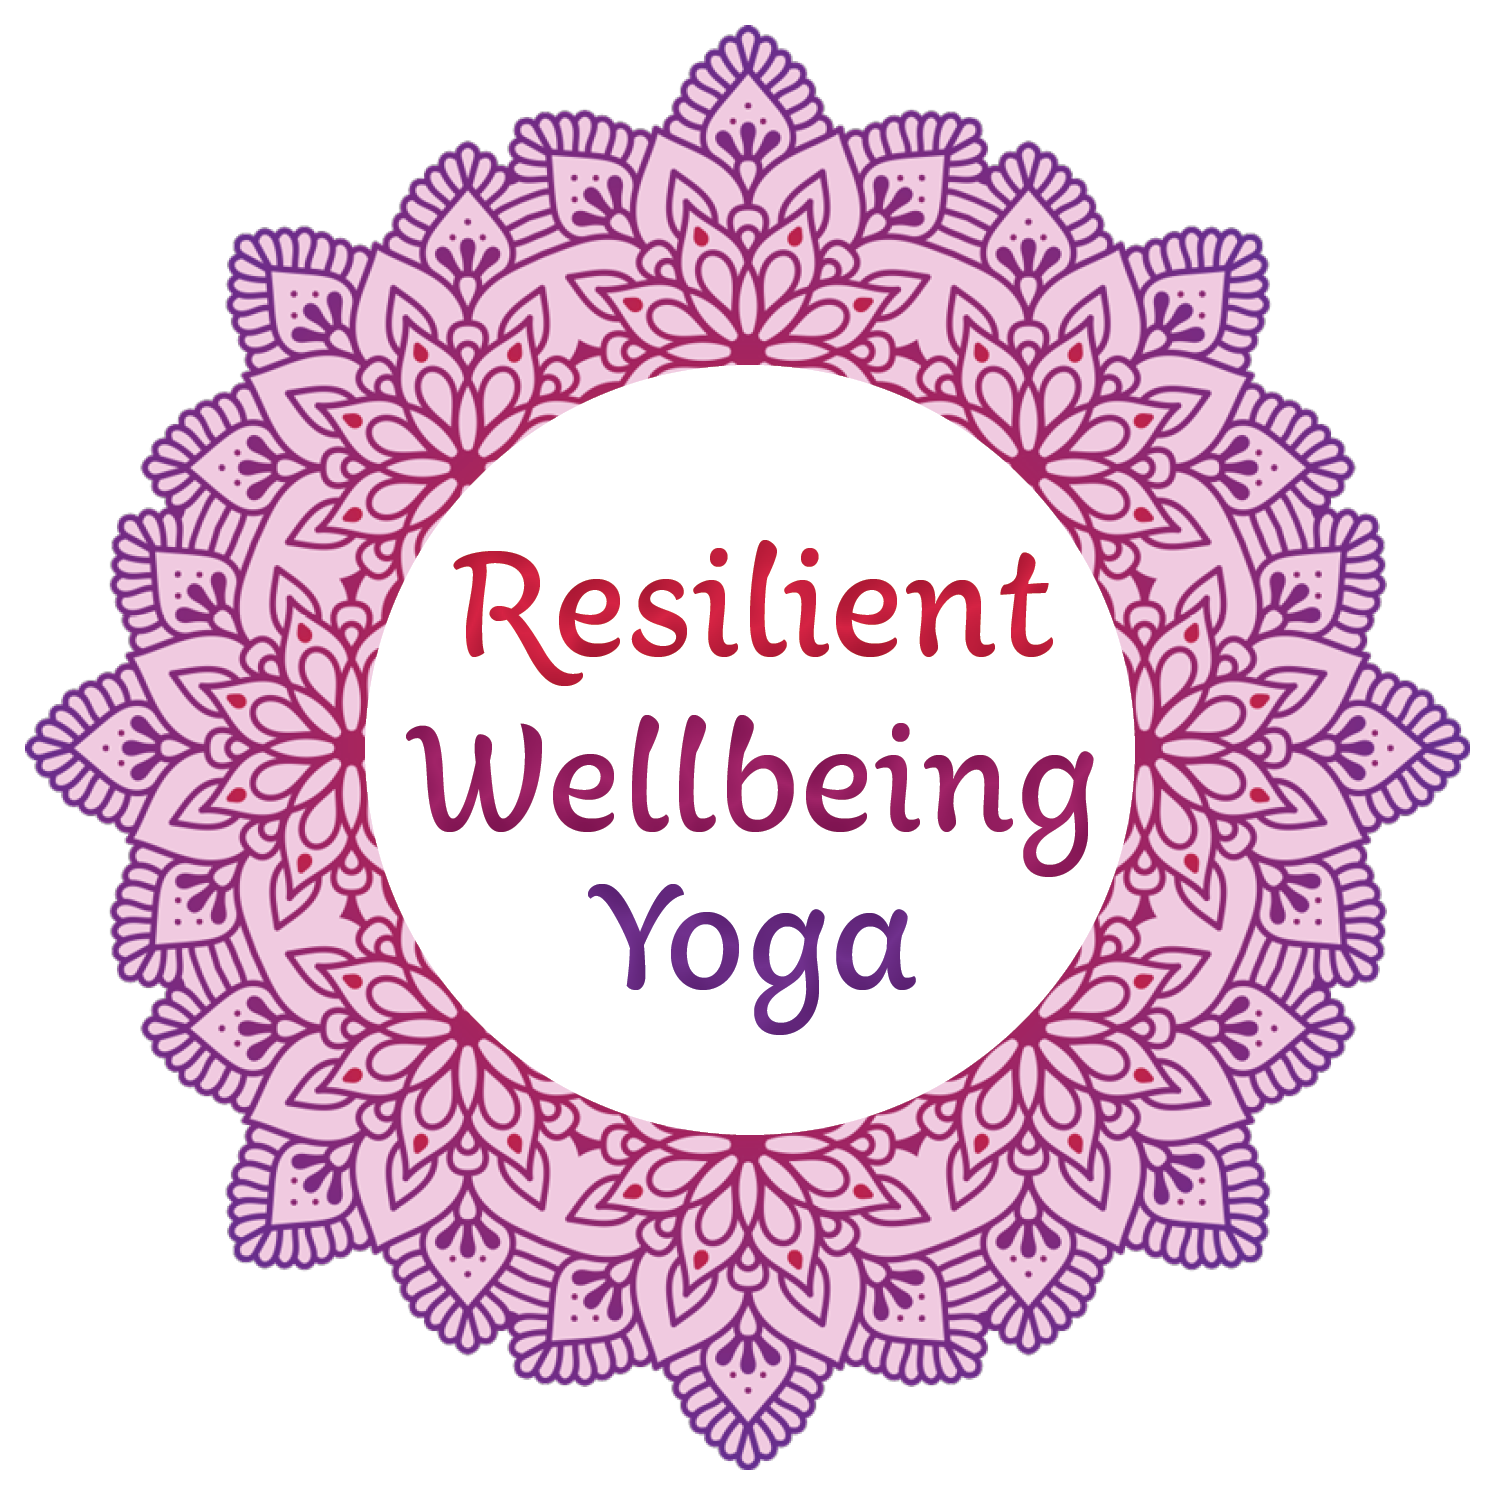 Resilient Wellbeing Yoga